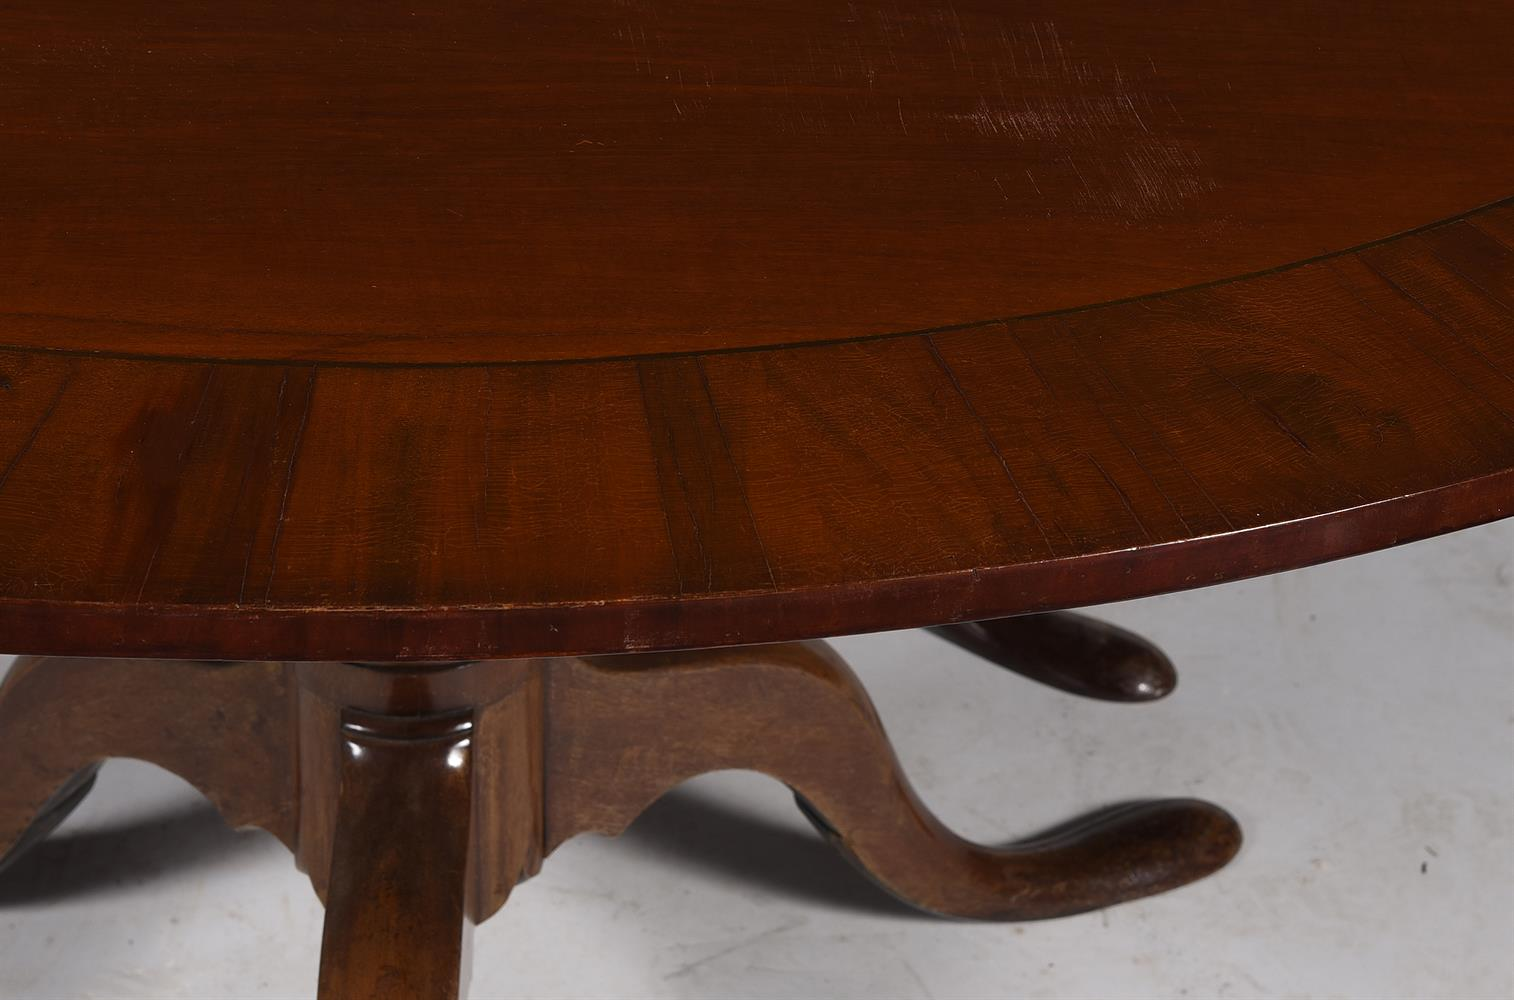 A MAHOGANY TWIN PEDESTAL DINING TABLE, CIRCA 1780 AND LATER - Image 2 of 3